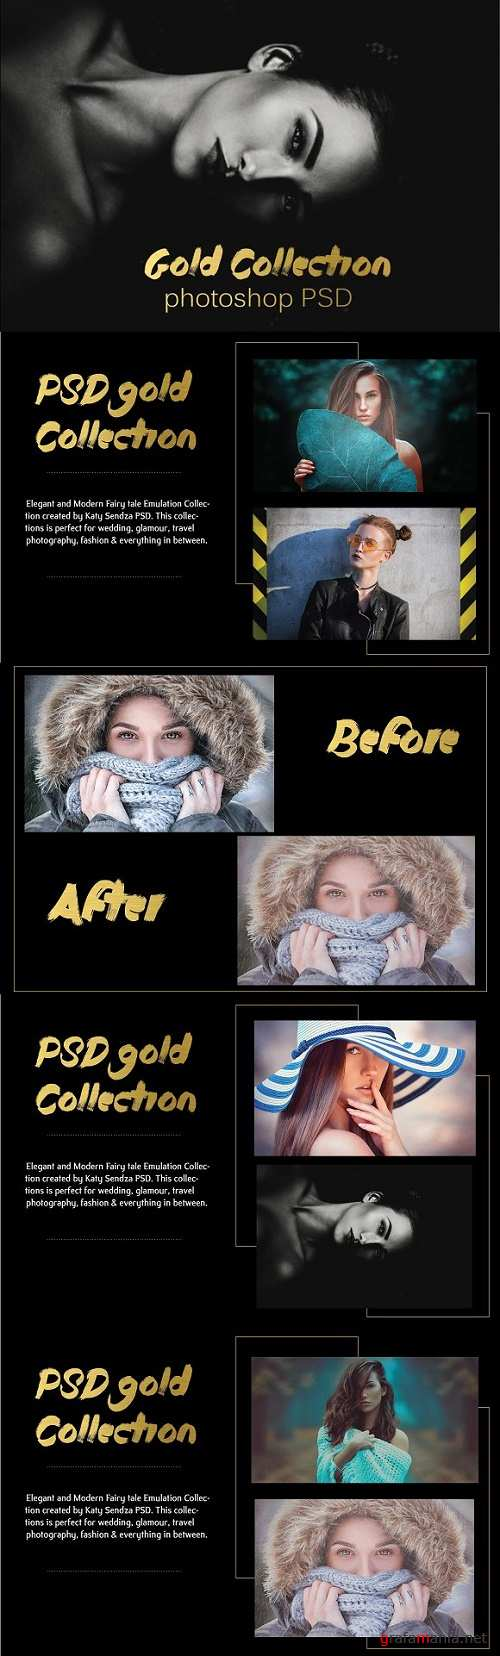 PSD Gold Collection 1349636